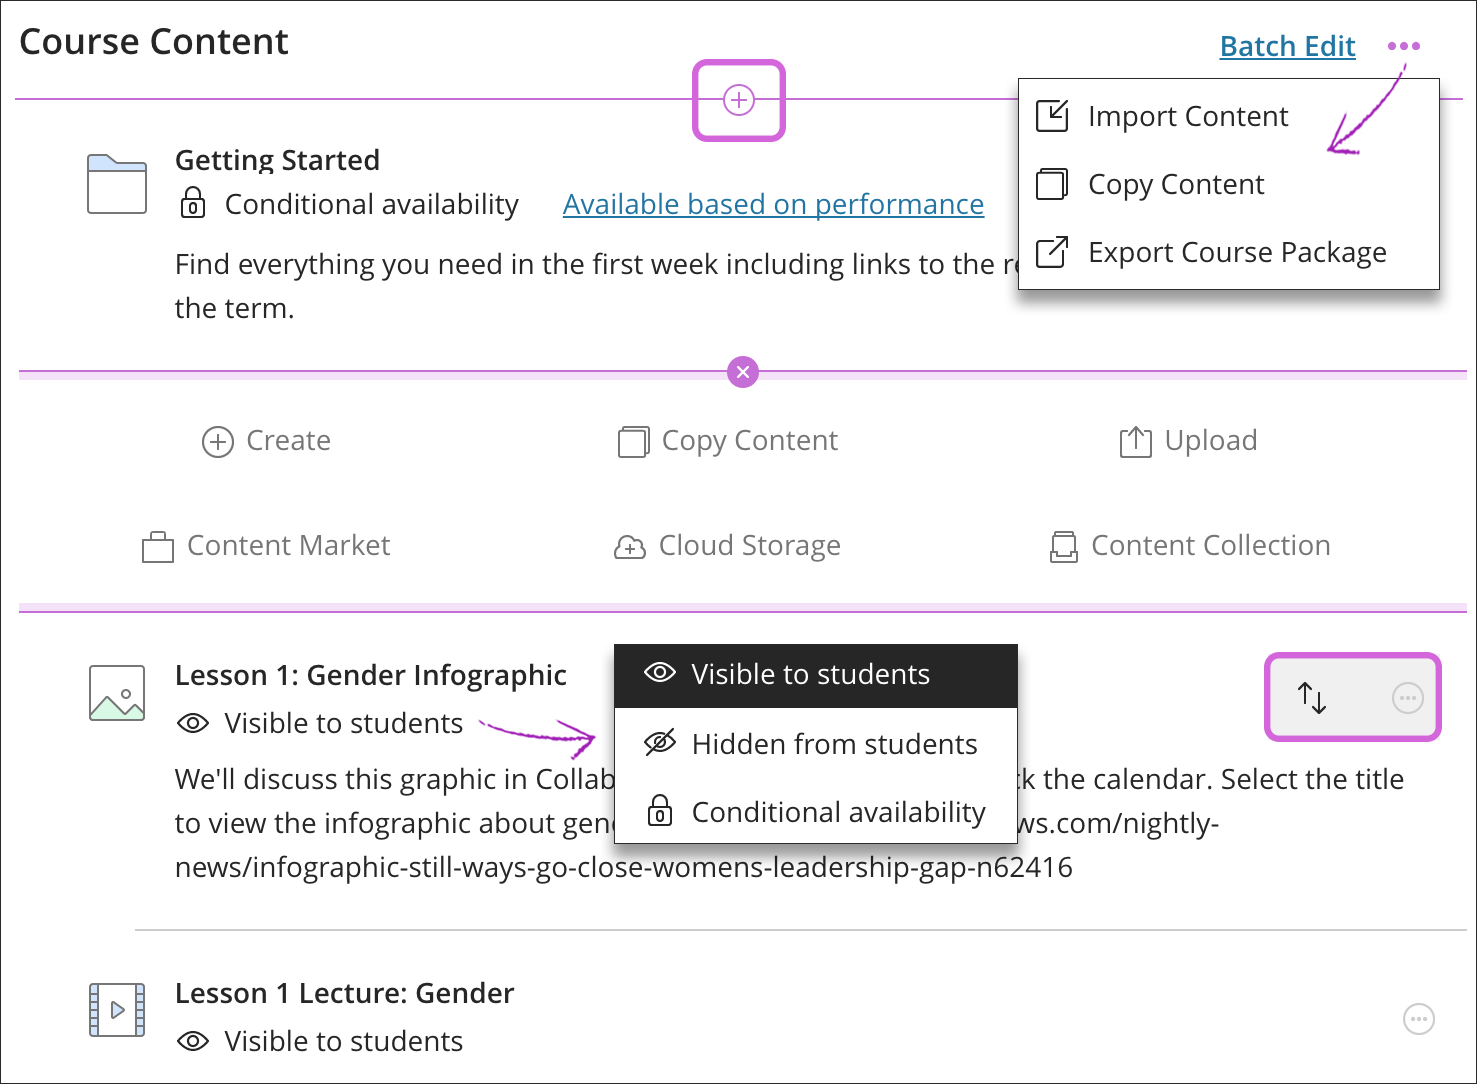 How to Create Course Content for a MILPA Course